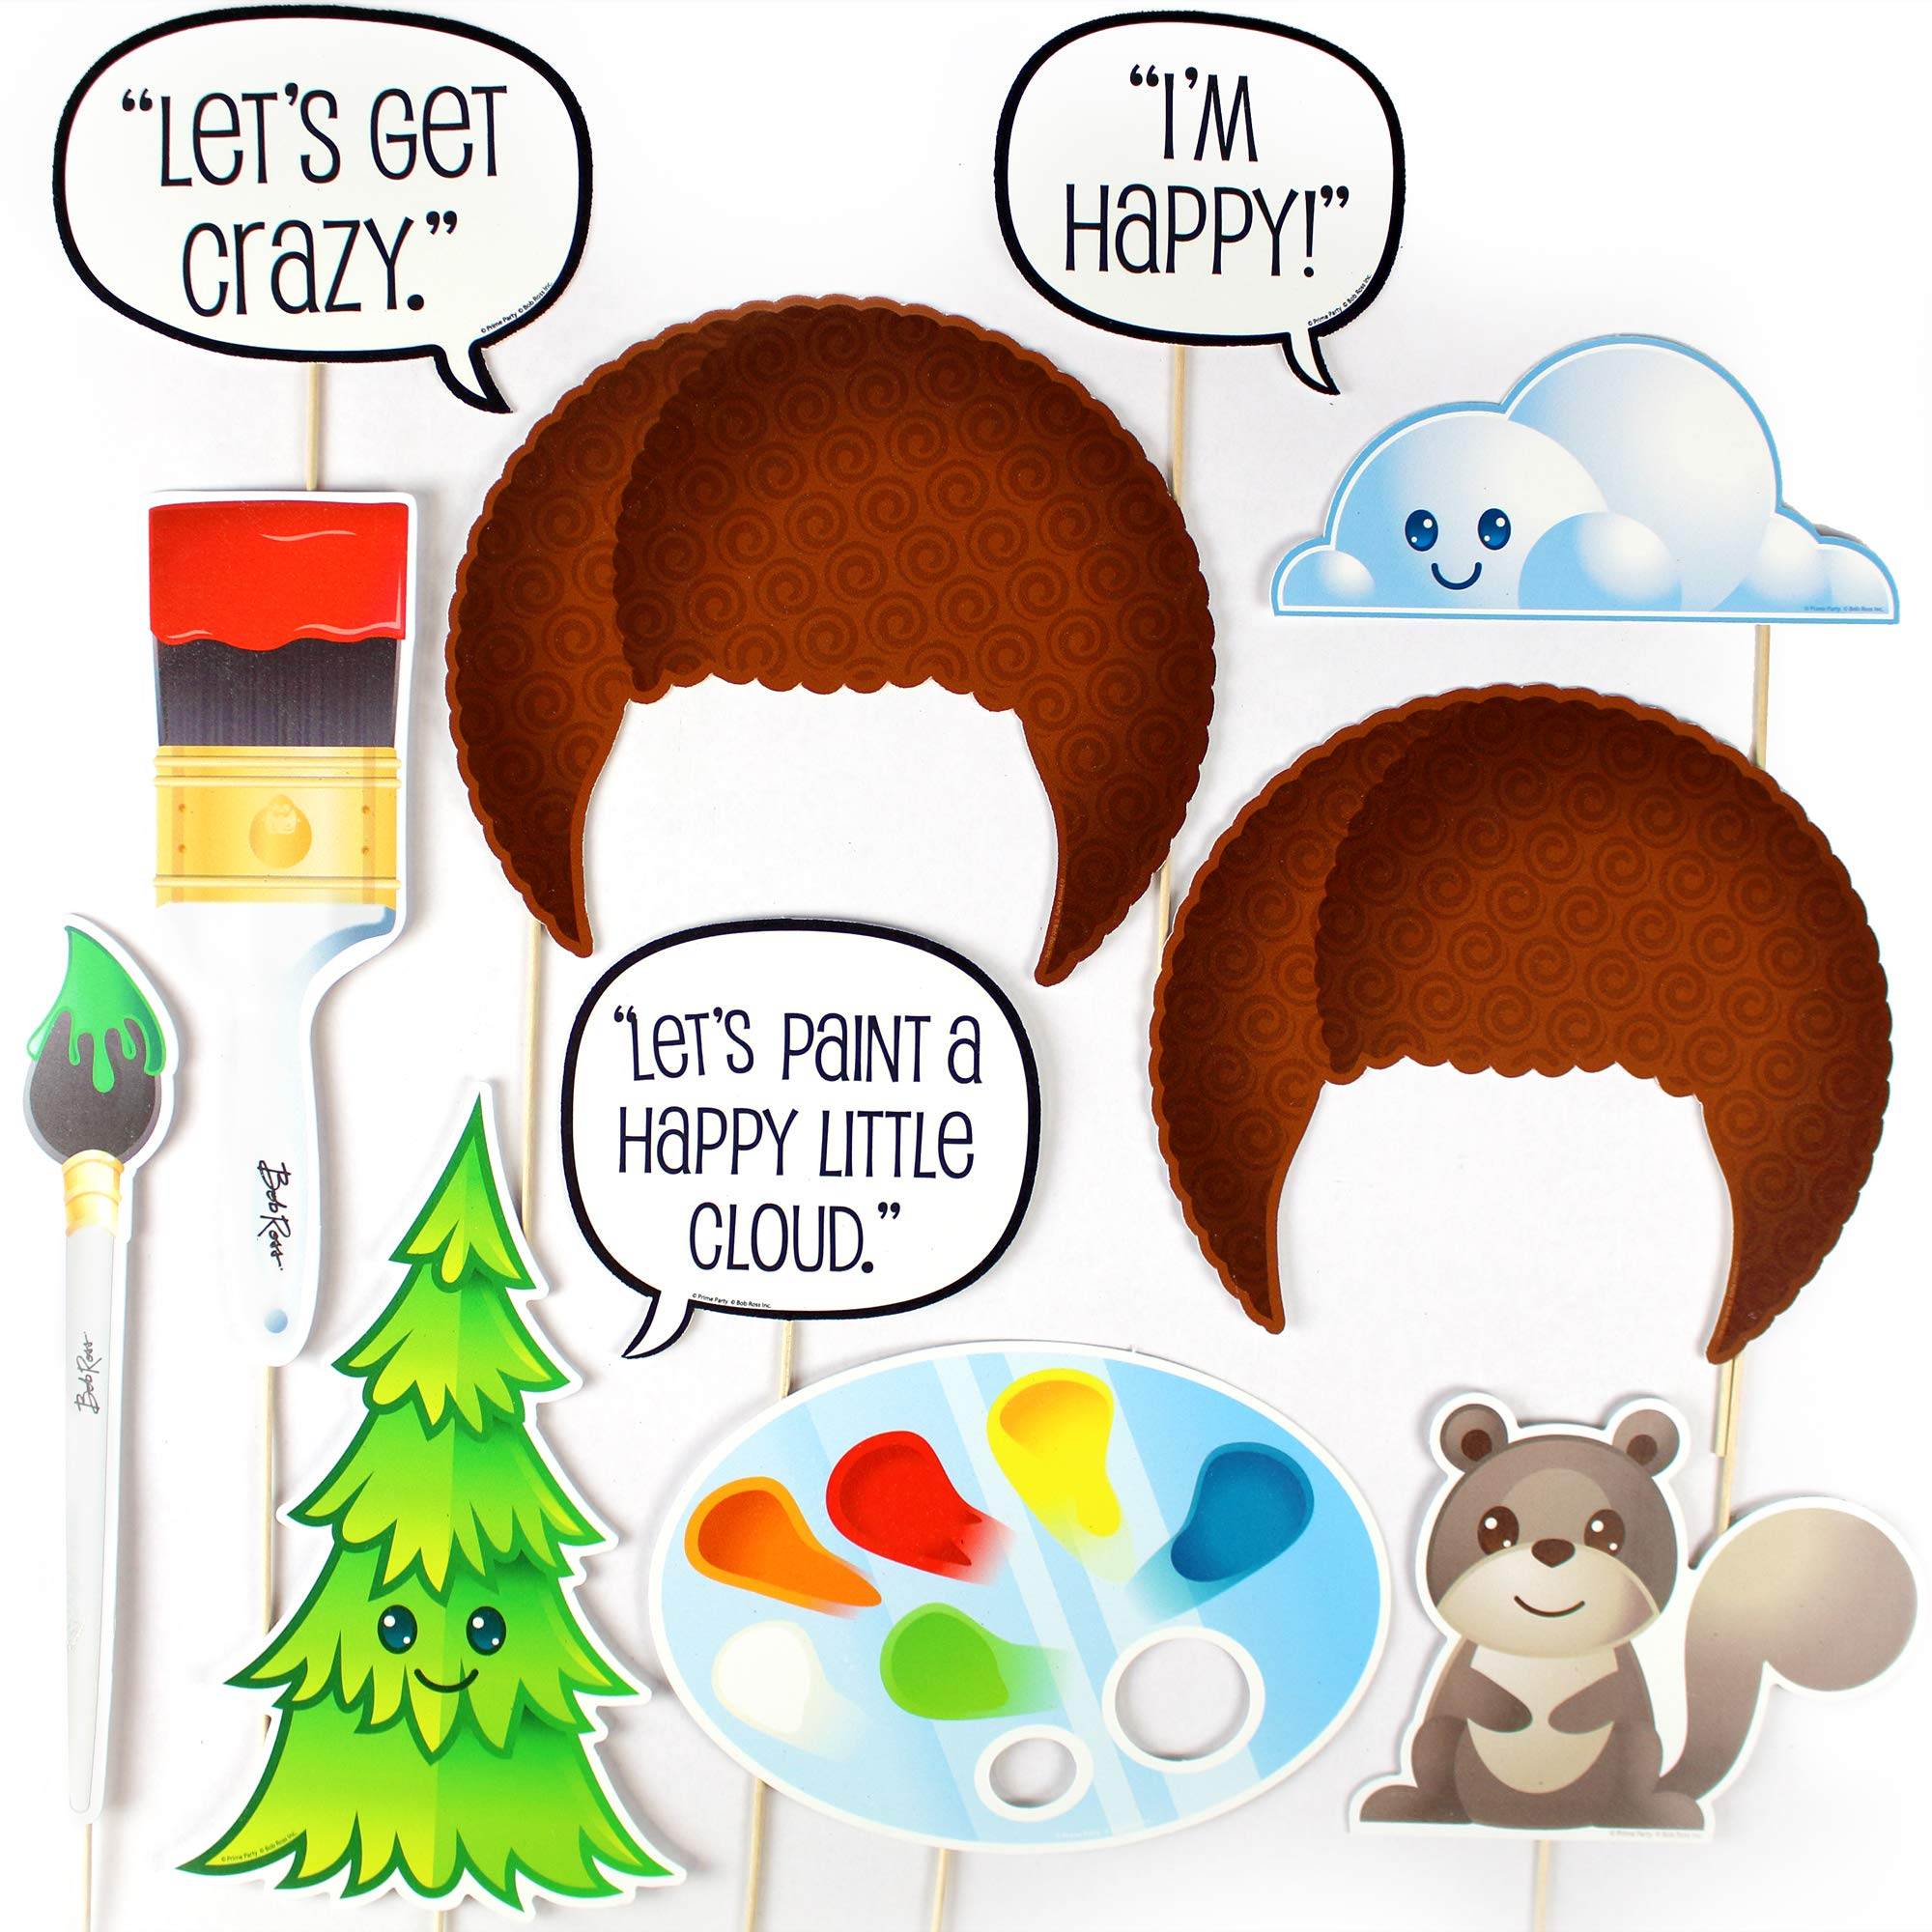 Bob Ross Photo Booth Props (11 Piece Set) Party Decorations by Prime Party